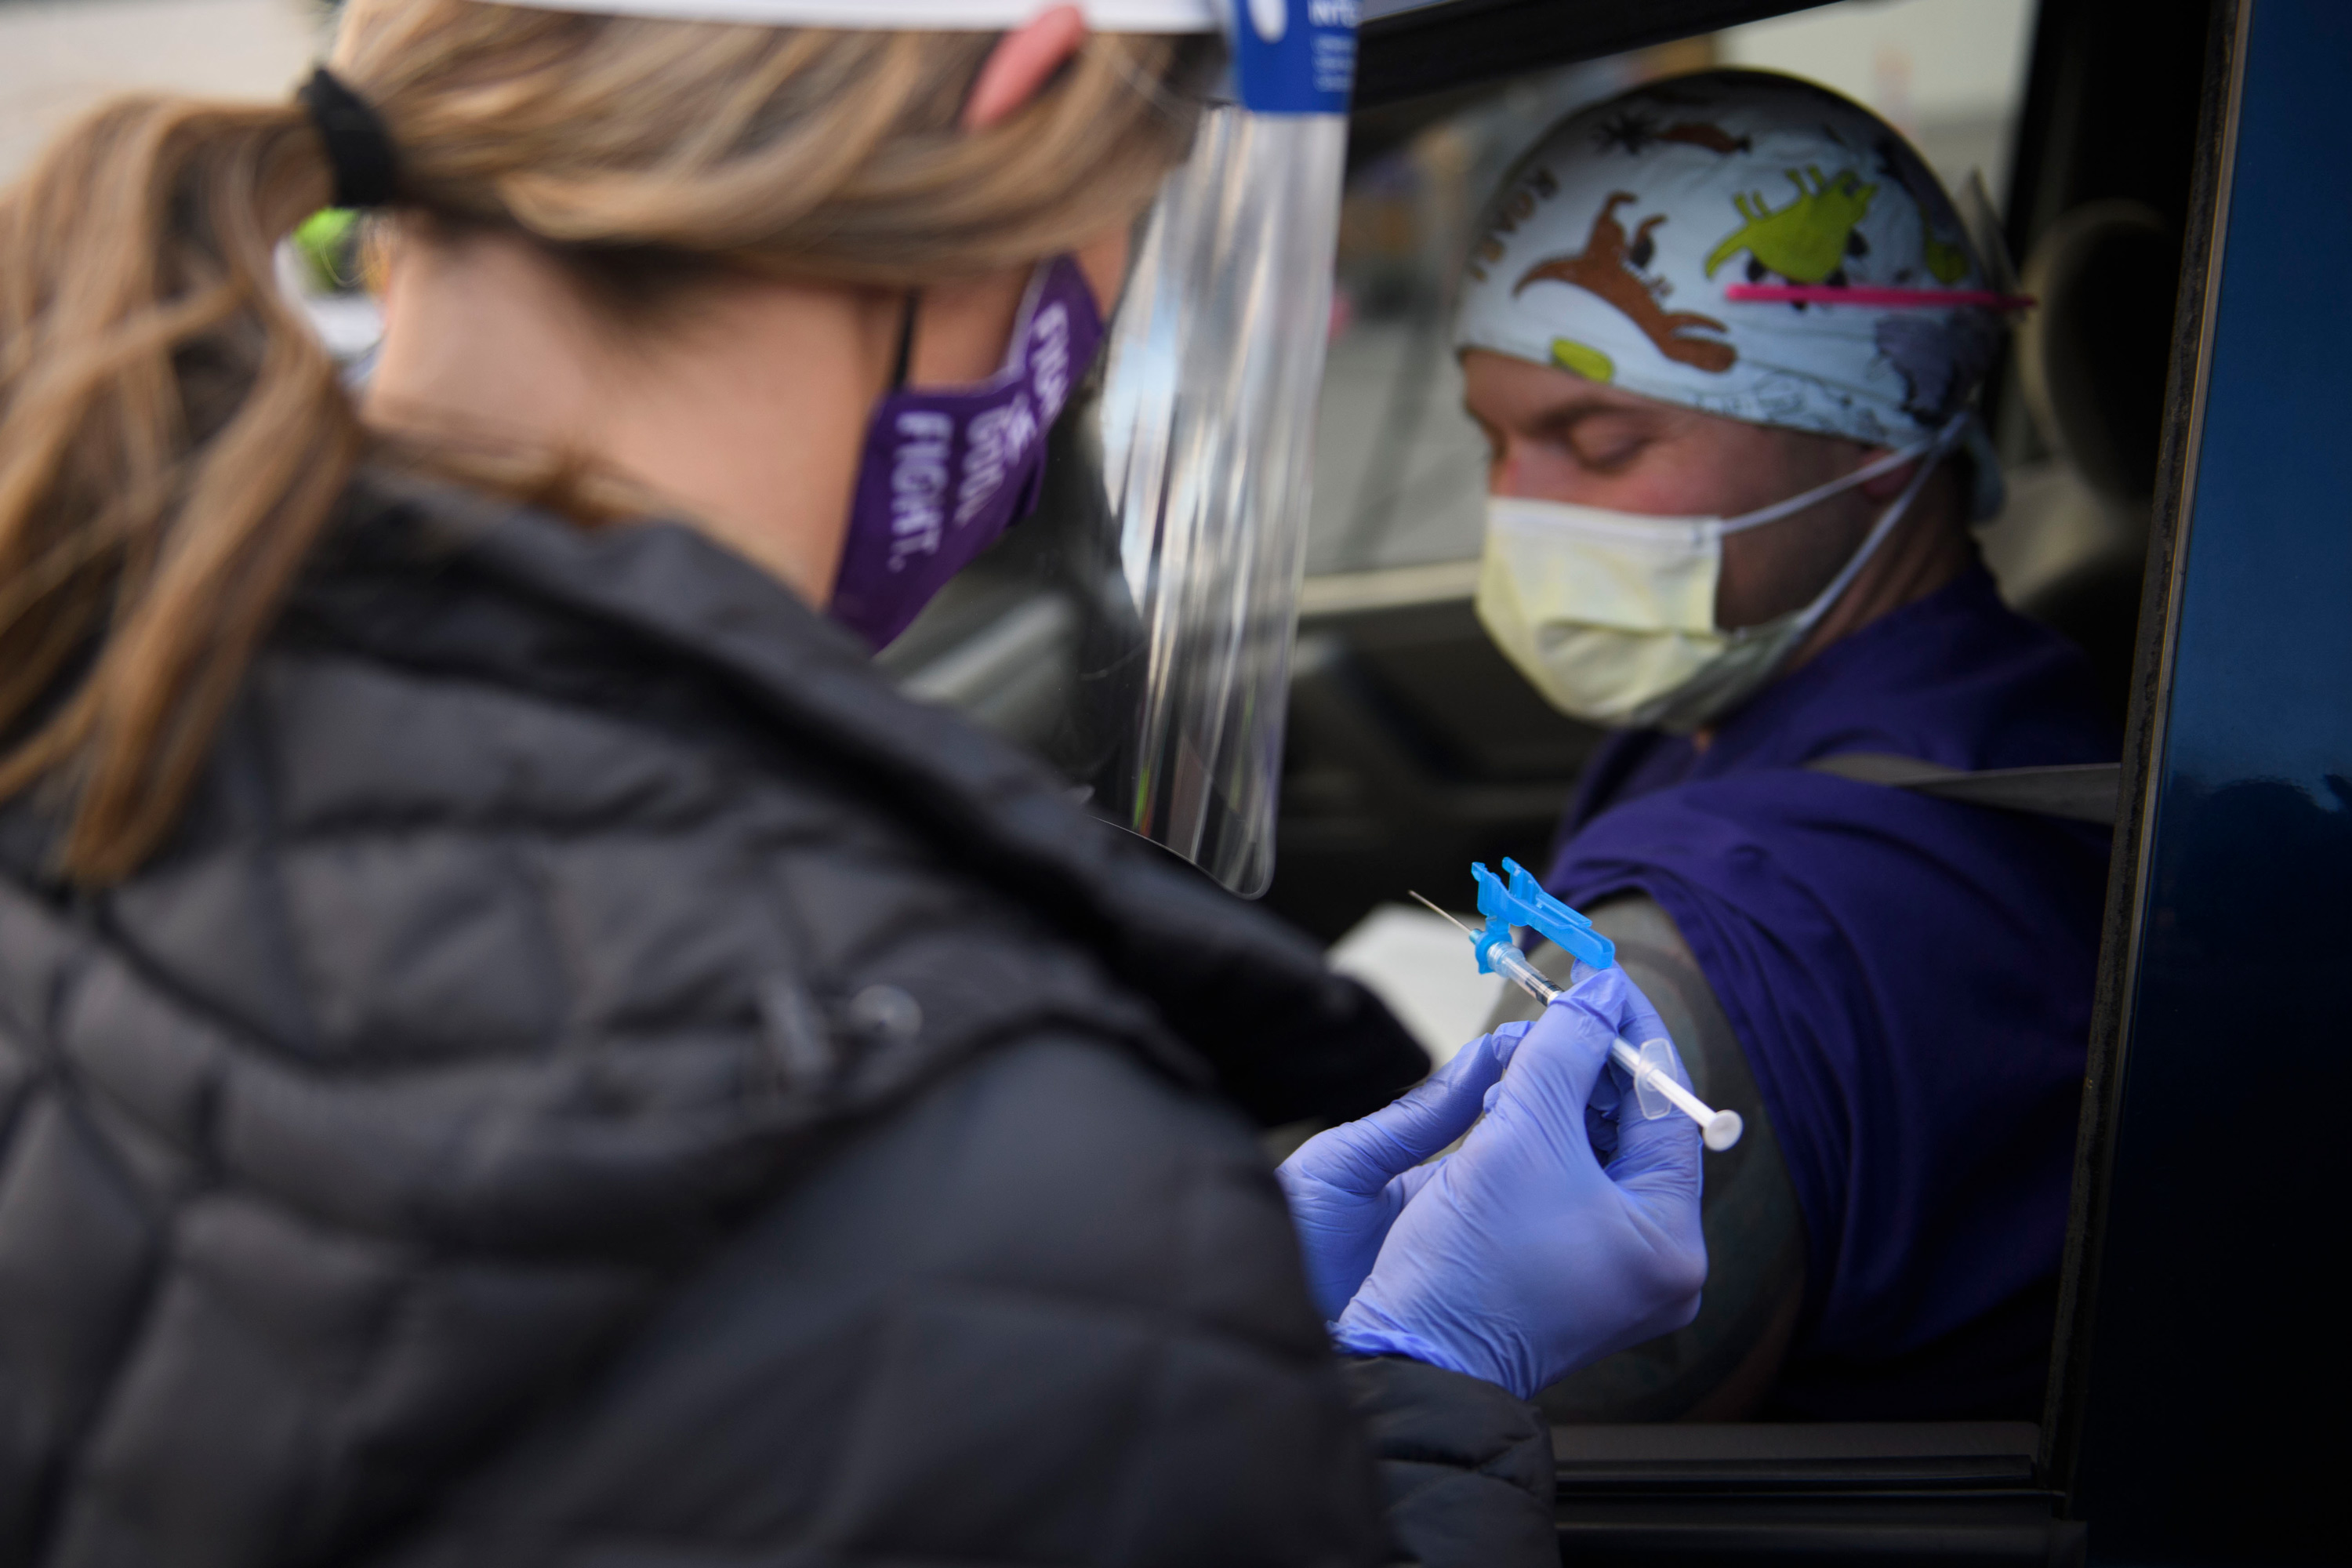 A nurse prepares to administer a first dose of the Pfizer-BioNTech Covid-19 vaccine to a front-line health care worker at a drive up vaccination site in Reno, Nevada on December 17.